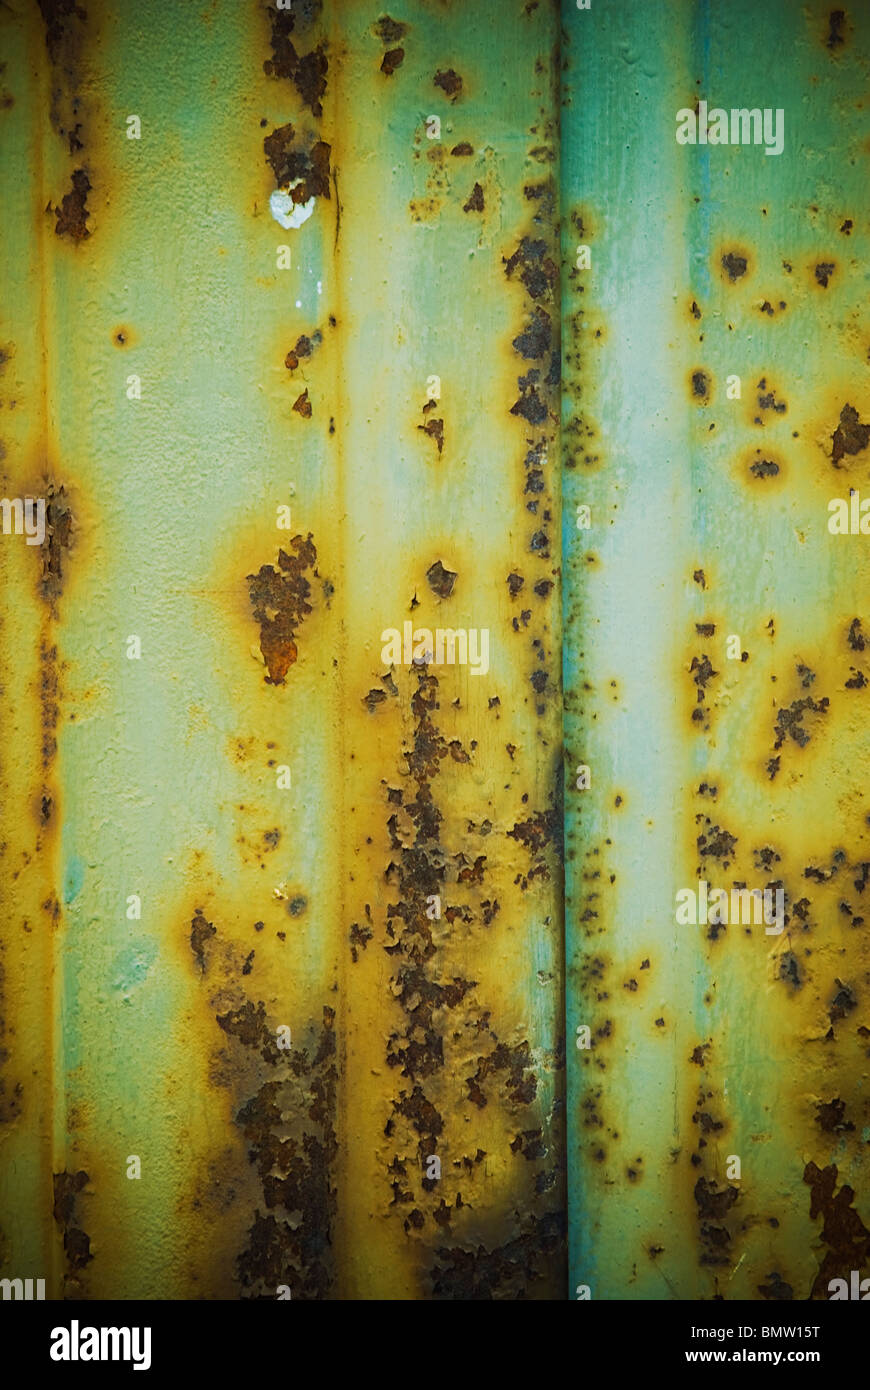 Background abstract texture rusted metal surface - Stock Image